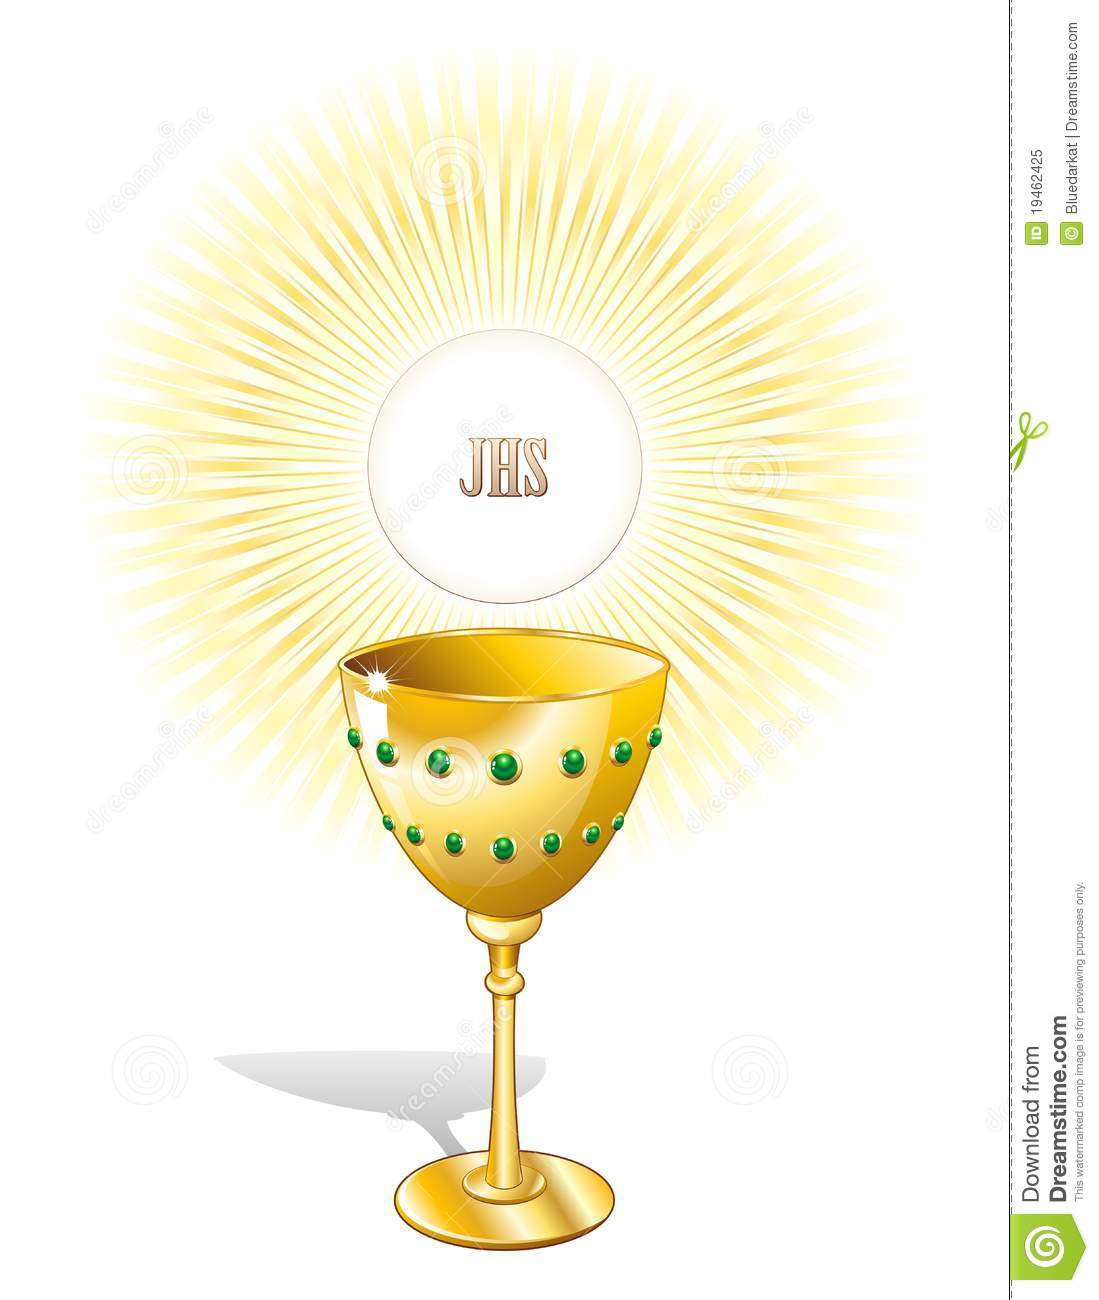 Religion Chalice Cup And Host Royalty Free Stock Photo   Image